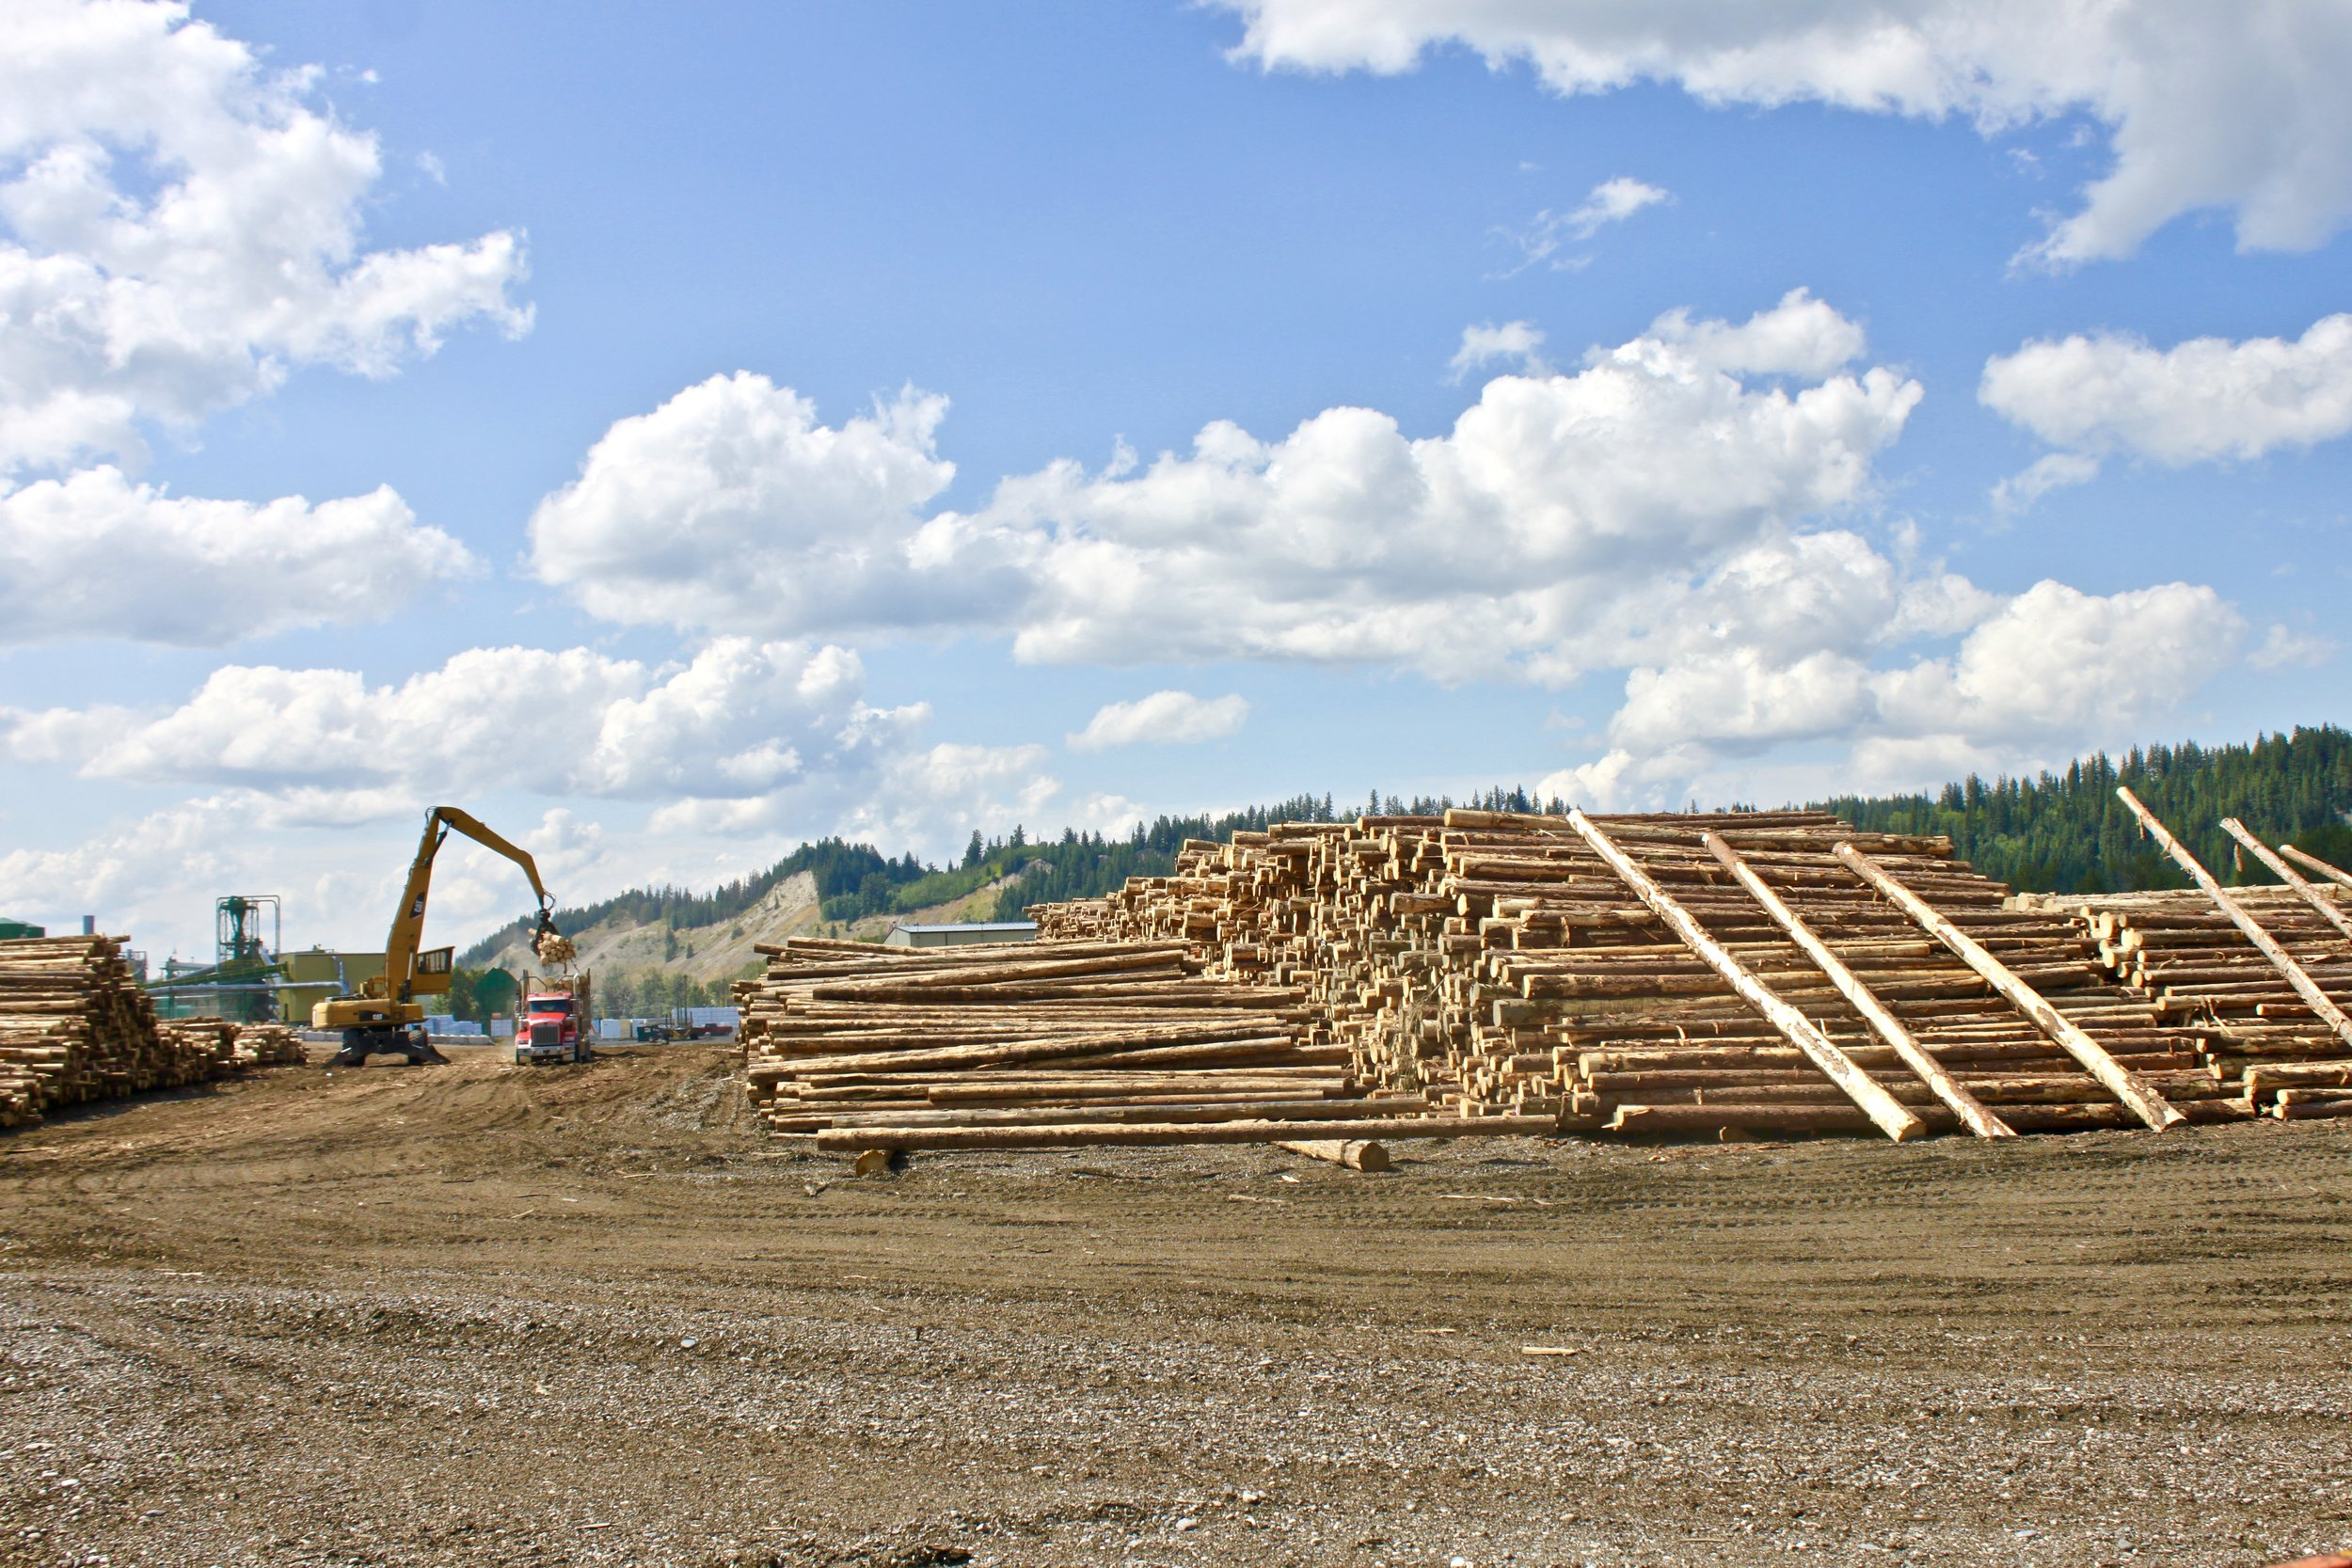 In the 1980s lumber was an economic driver of Prince George, given it at the time the largest number of millionaires in Canada. This industry has since diminished.